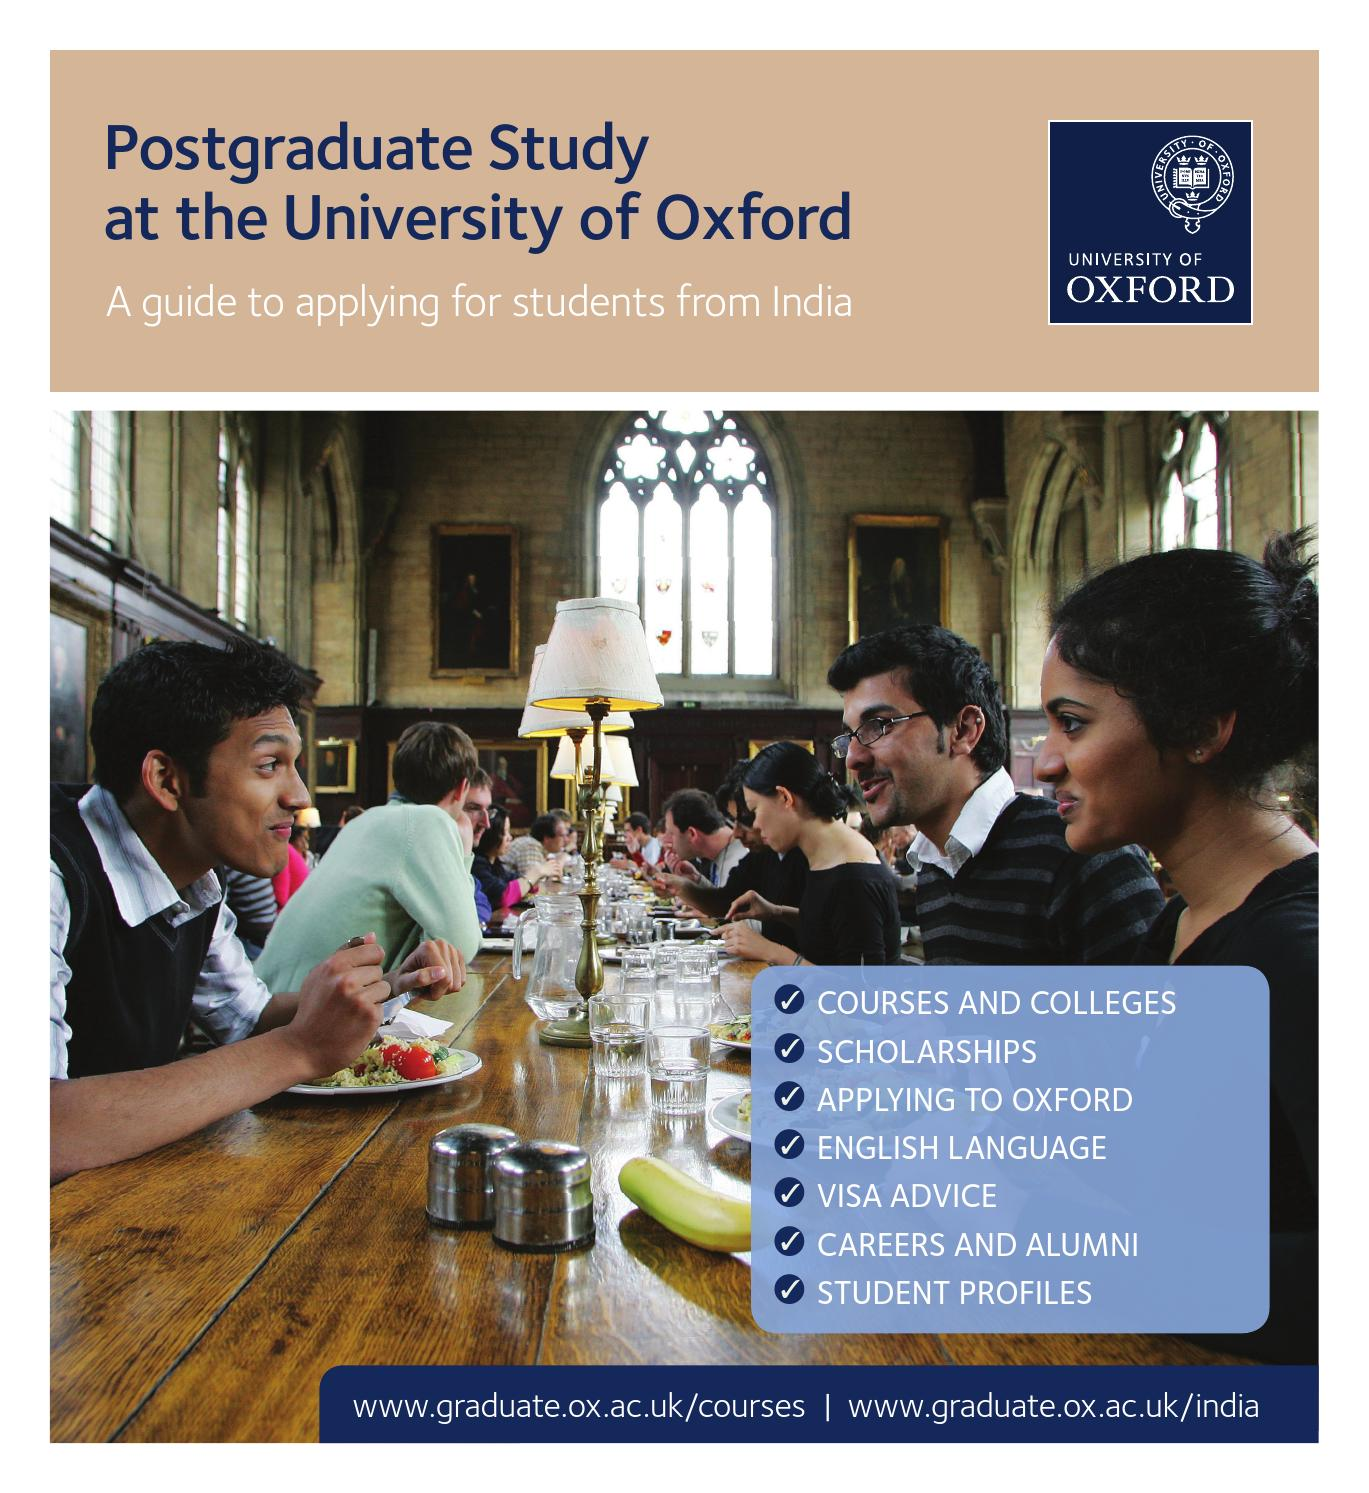 Postgraduate Study Postgraduate Study At The University Of Oxford: A Guide To